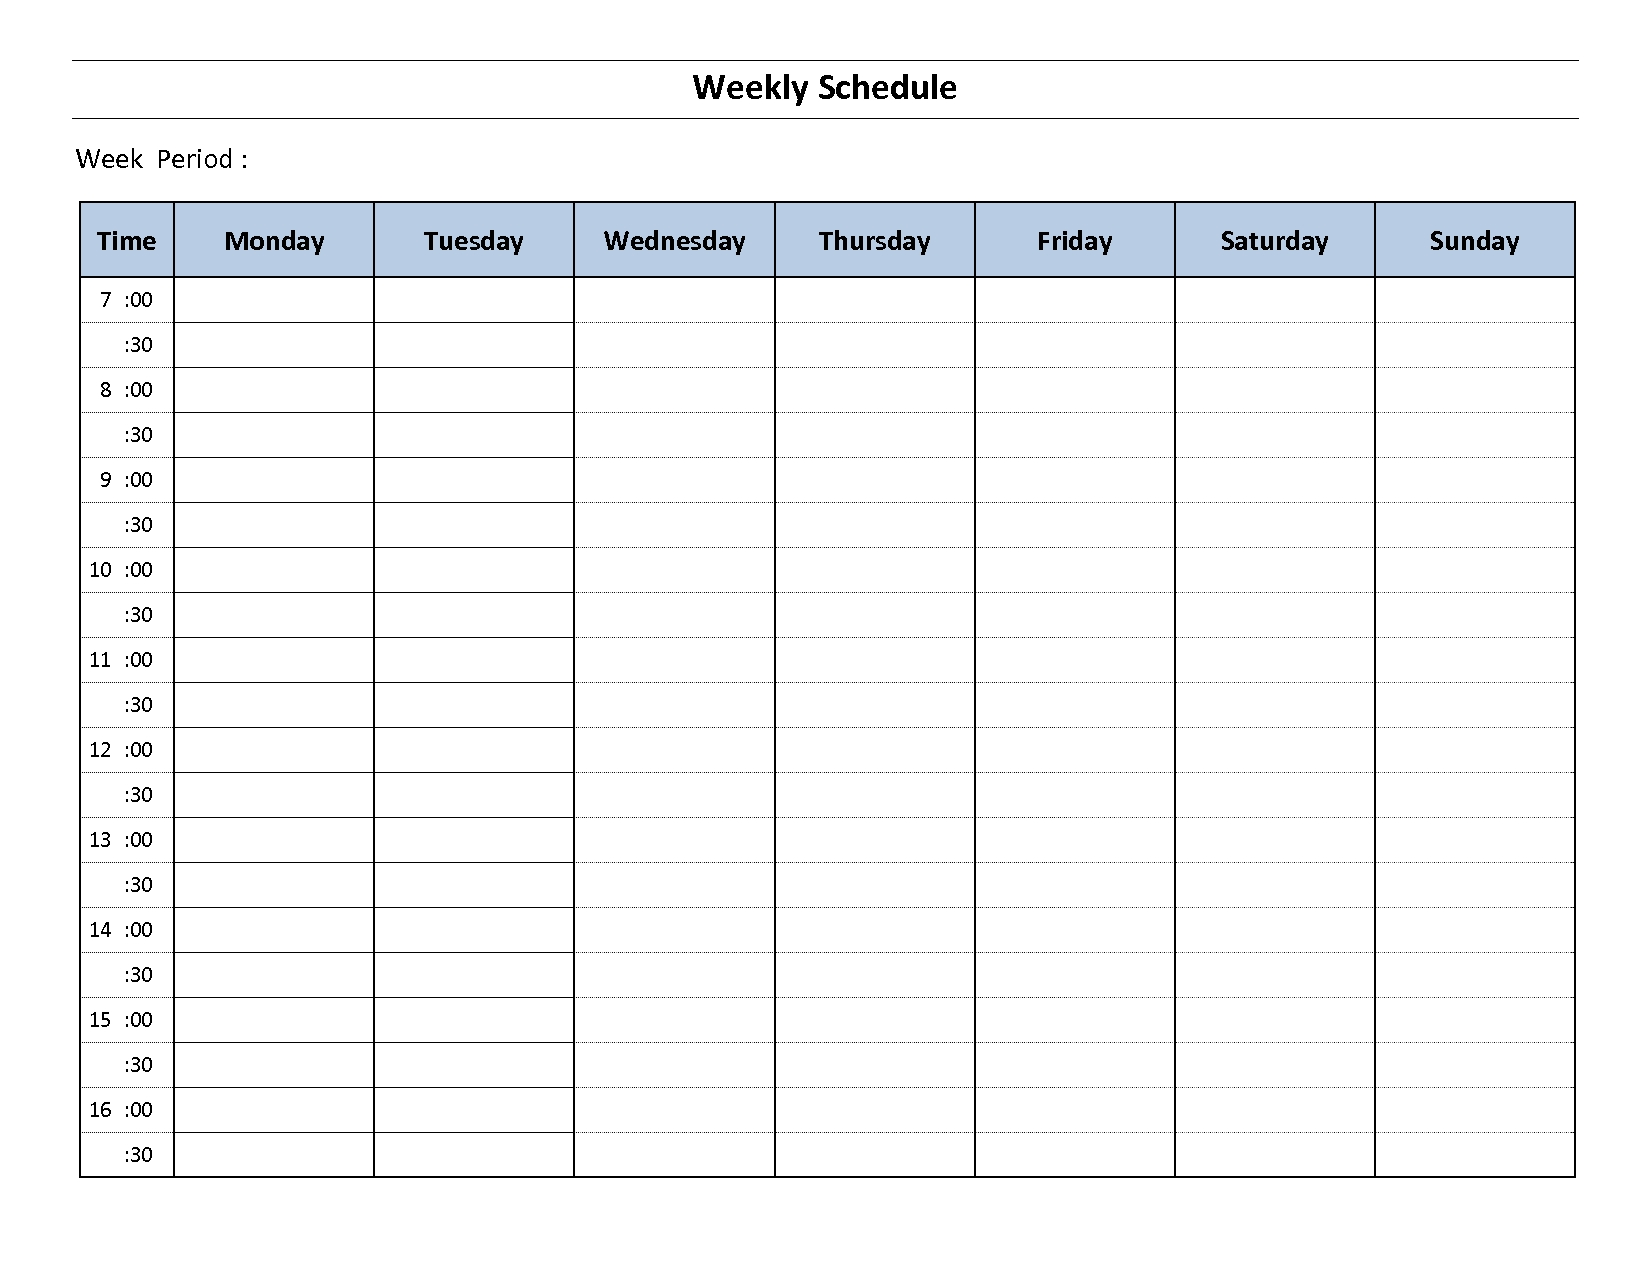 Monday To Sunday Schedule Template. Hourly Schedule Template-Monday To Friday 2 Week Calendar Template